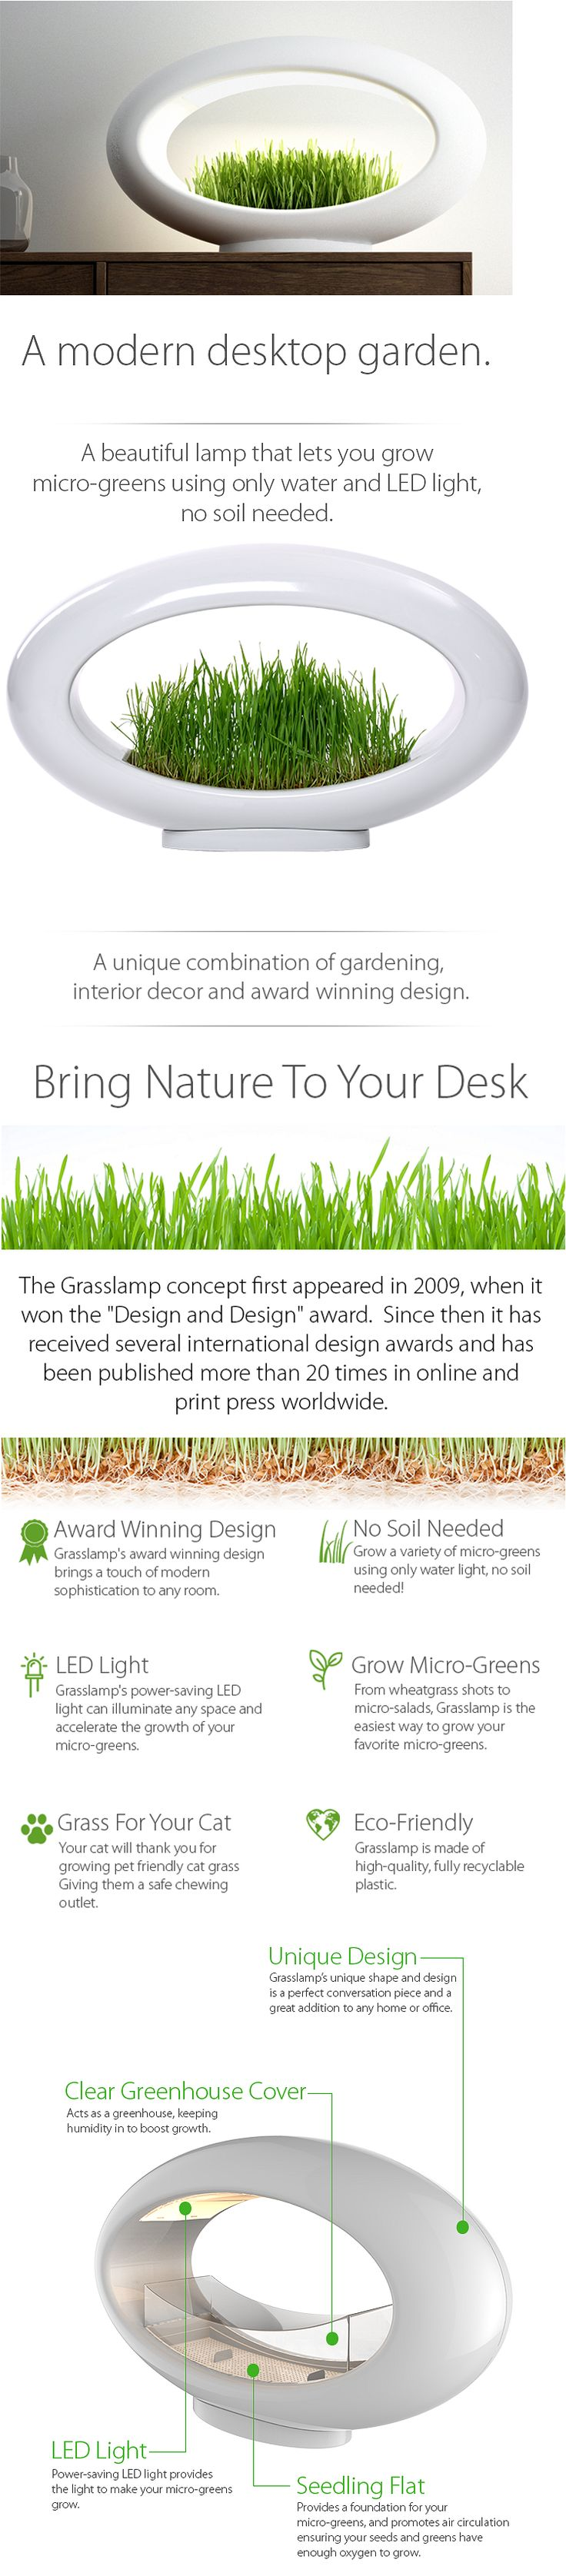 Grasslamp: The Modern Desktop Garden. A unique combination of gardening, interior decor, and award winning design. It's a hydroponic garden, a lamp, and Green. It's a beautiful lamp that lets you grow micro-greens using only water and LED light. No soil needed. Made of high-quality, fully recyclable plastic.